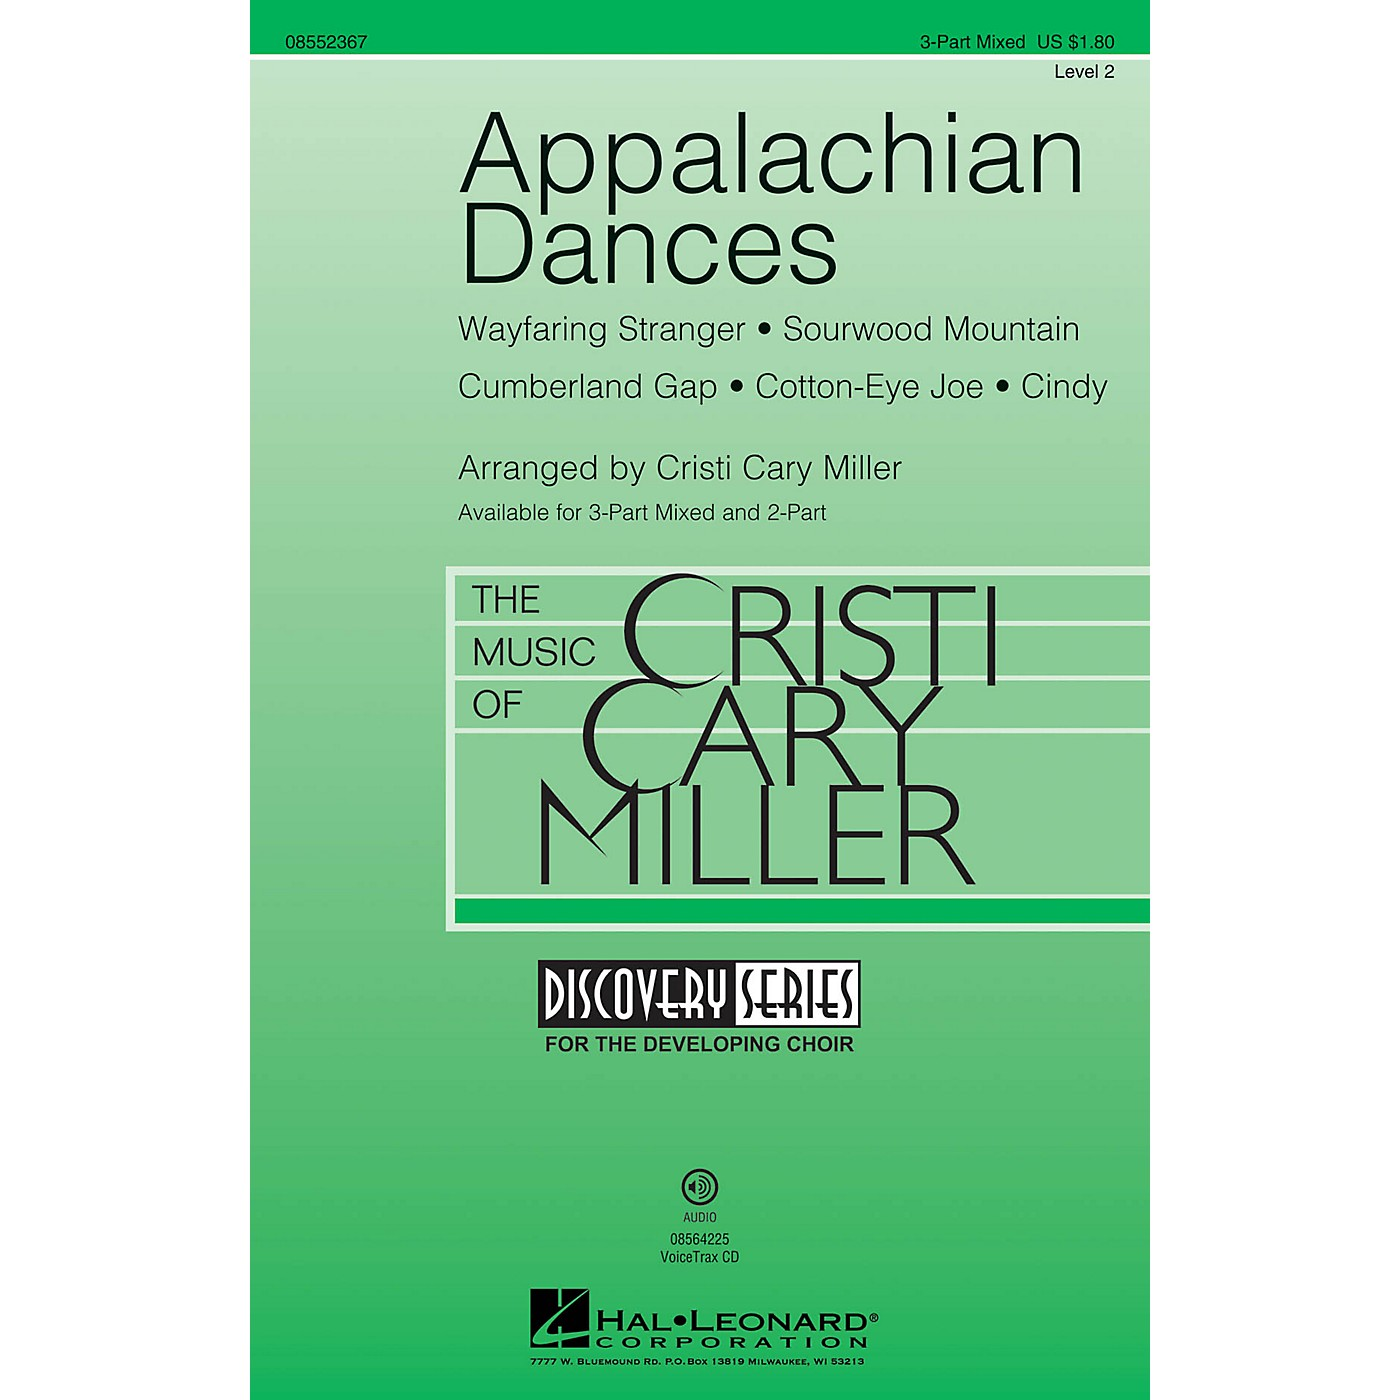 Hal Leonard Appalachian Dances (Medley) Discovery Level 2 VoiceTrax CD Arranged by Cristi Cary Miller thumbnail